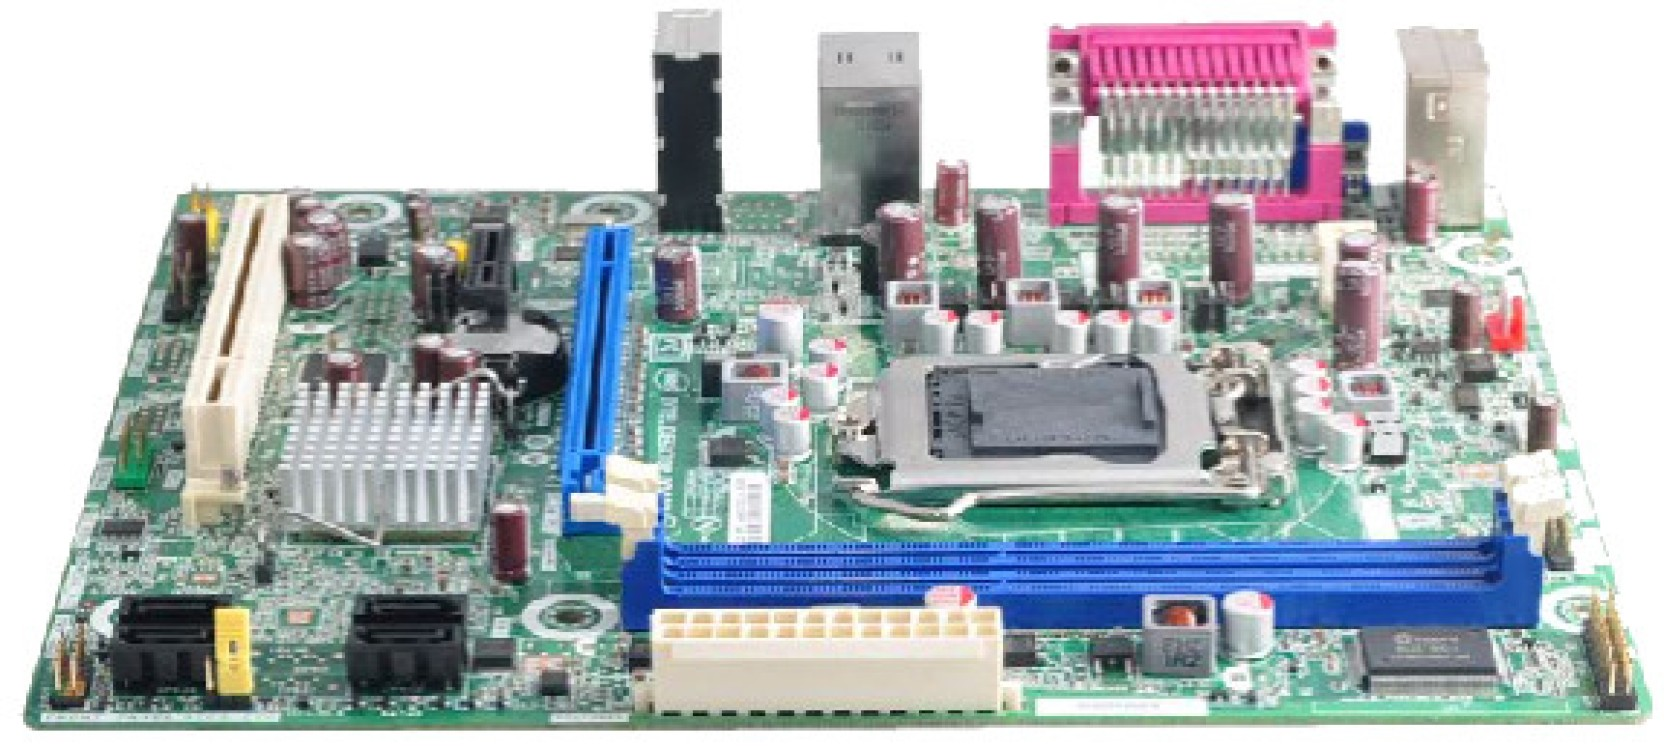 Intel Dh61ww With I5 2320 Processor Motherboard Electric Circuit Board Tshirt Share